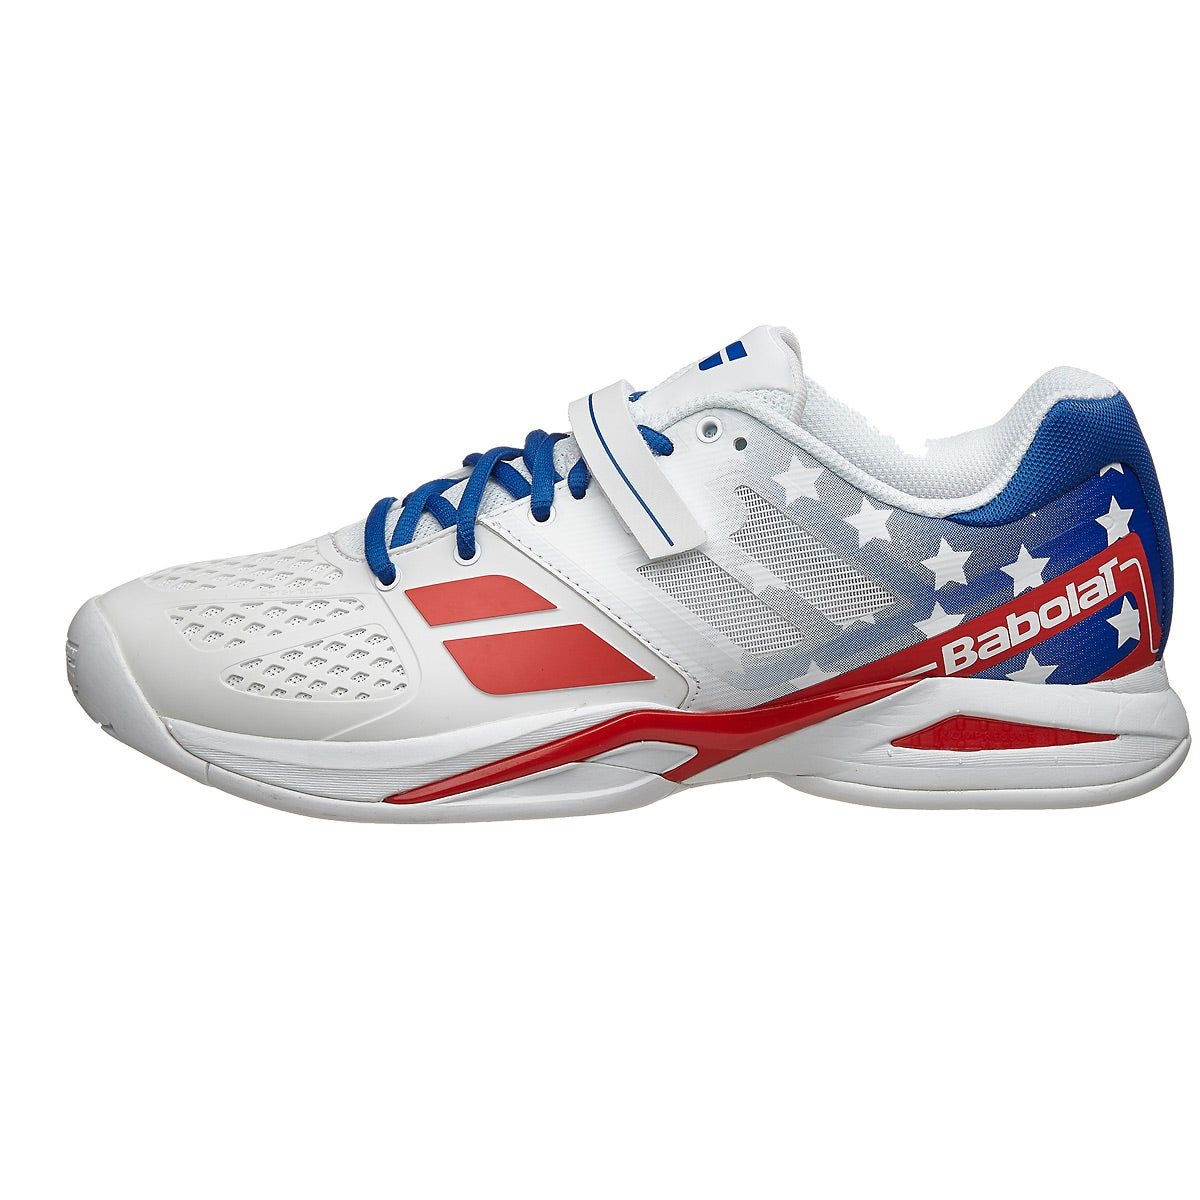 Babolat Tennis Shoes >> Babolat Propulse All Court Stars & Stripes Men's Shoes 360° View